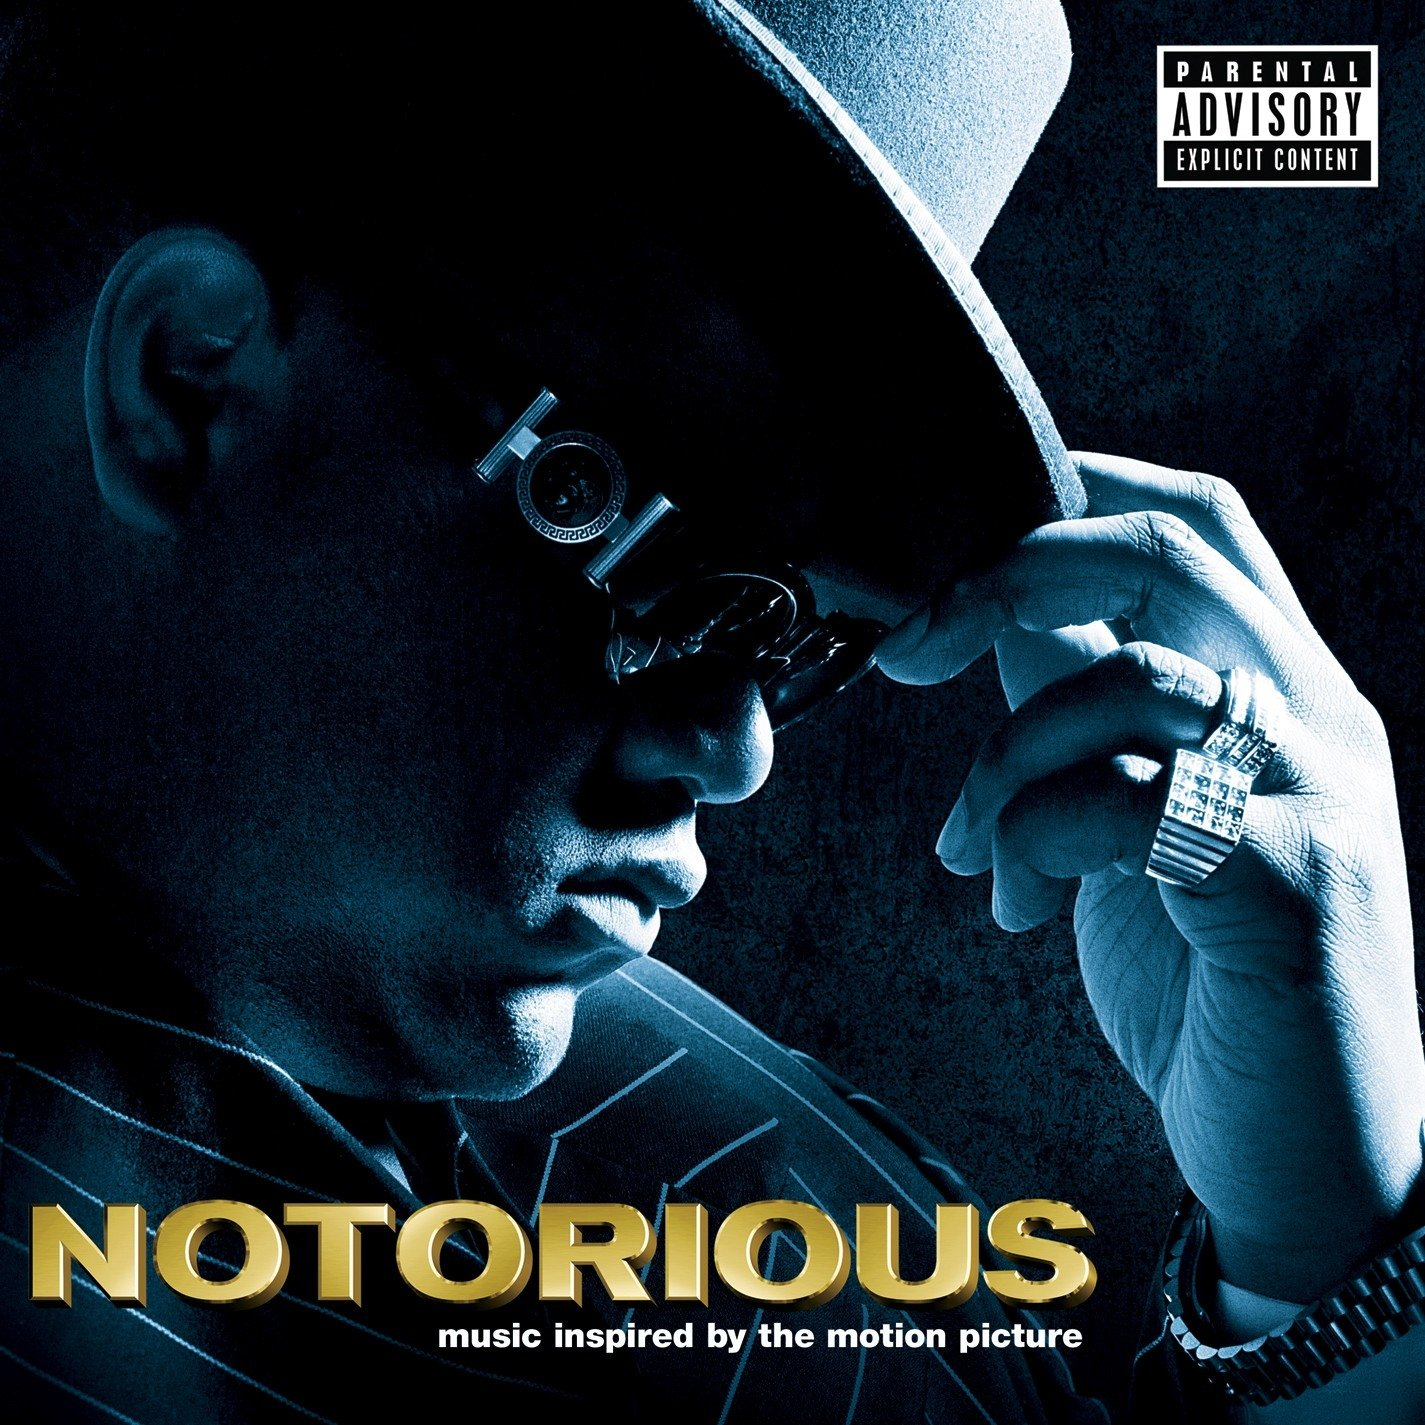 Notorious [12 inch Analog]                                                                                                                                                                                                                                                                                                                                                                                                <span class=